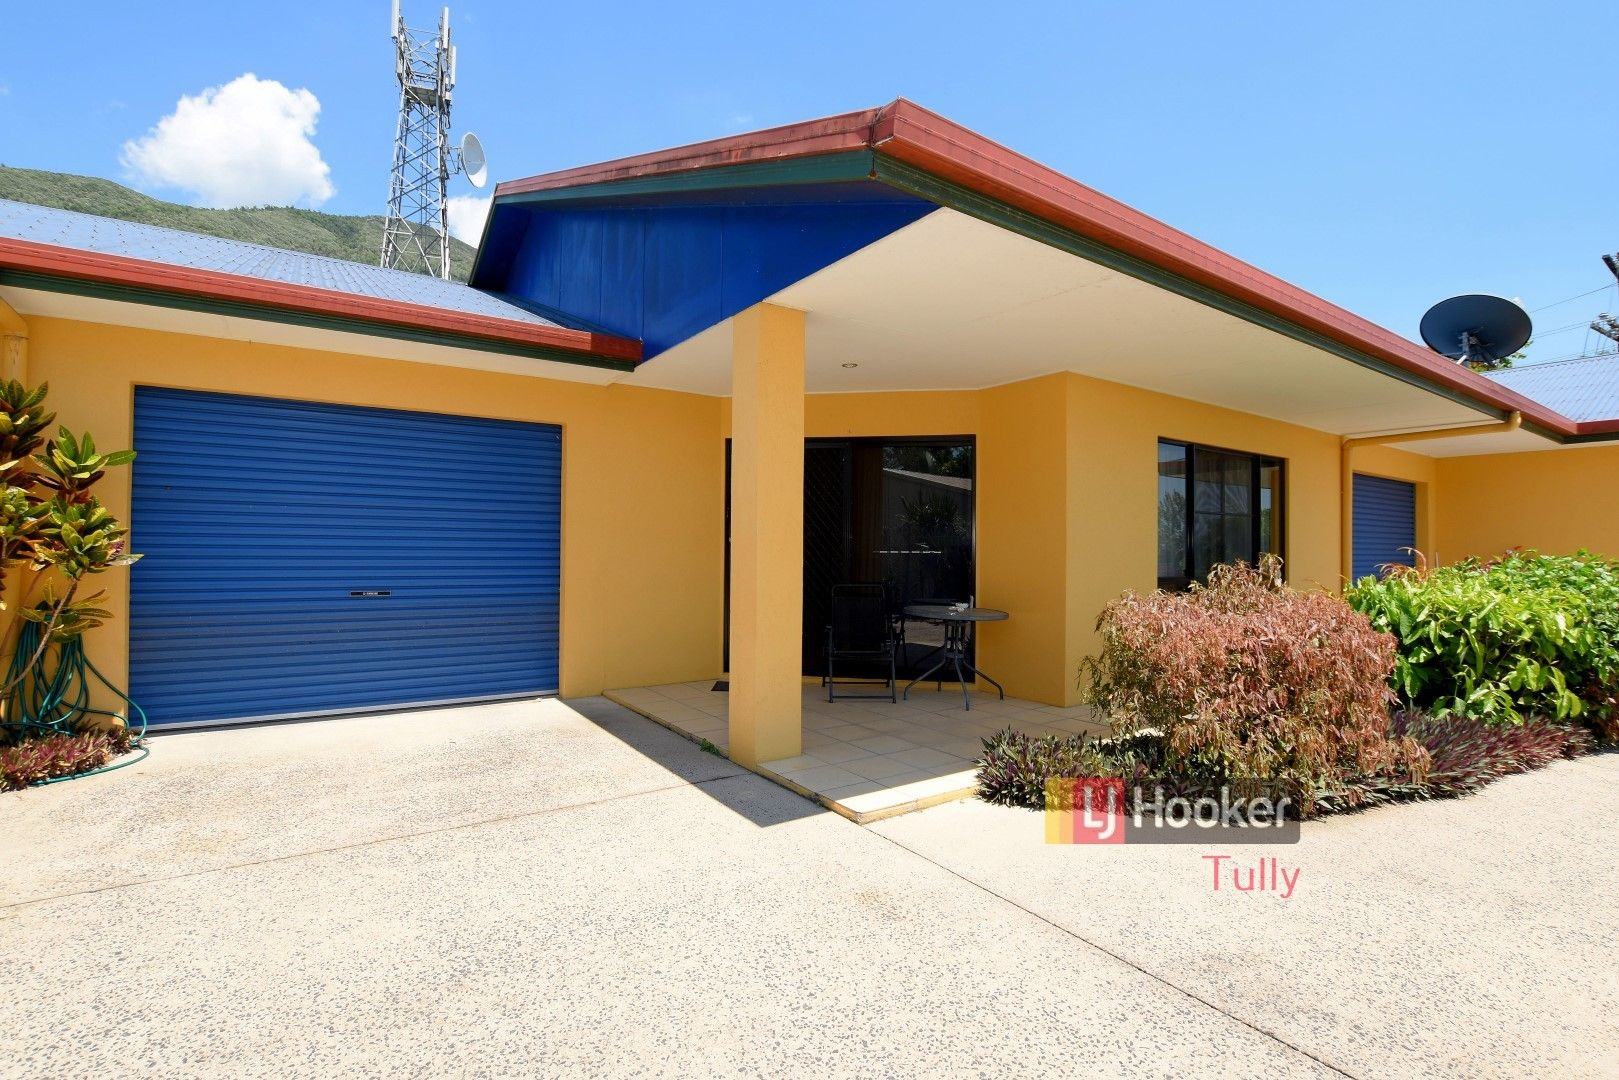 21 Henry Street, Tully QLD 4854, Image 1